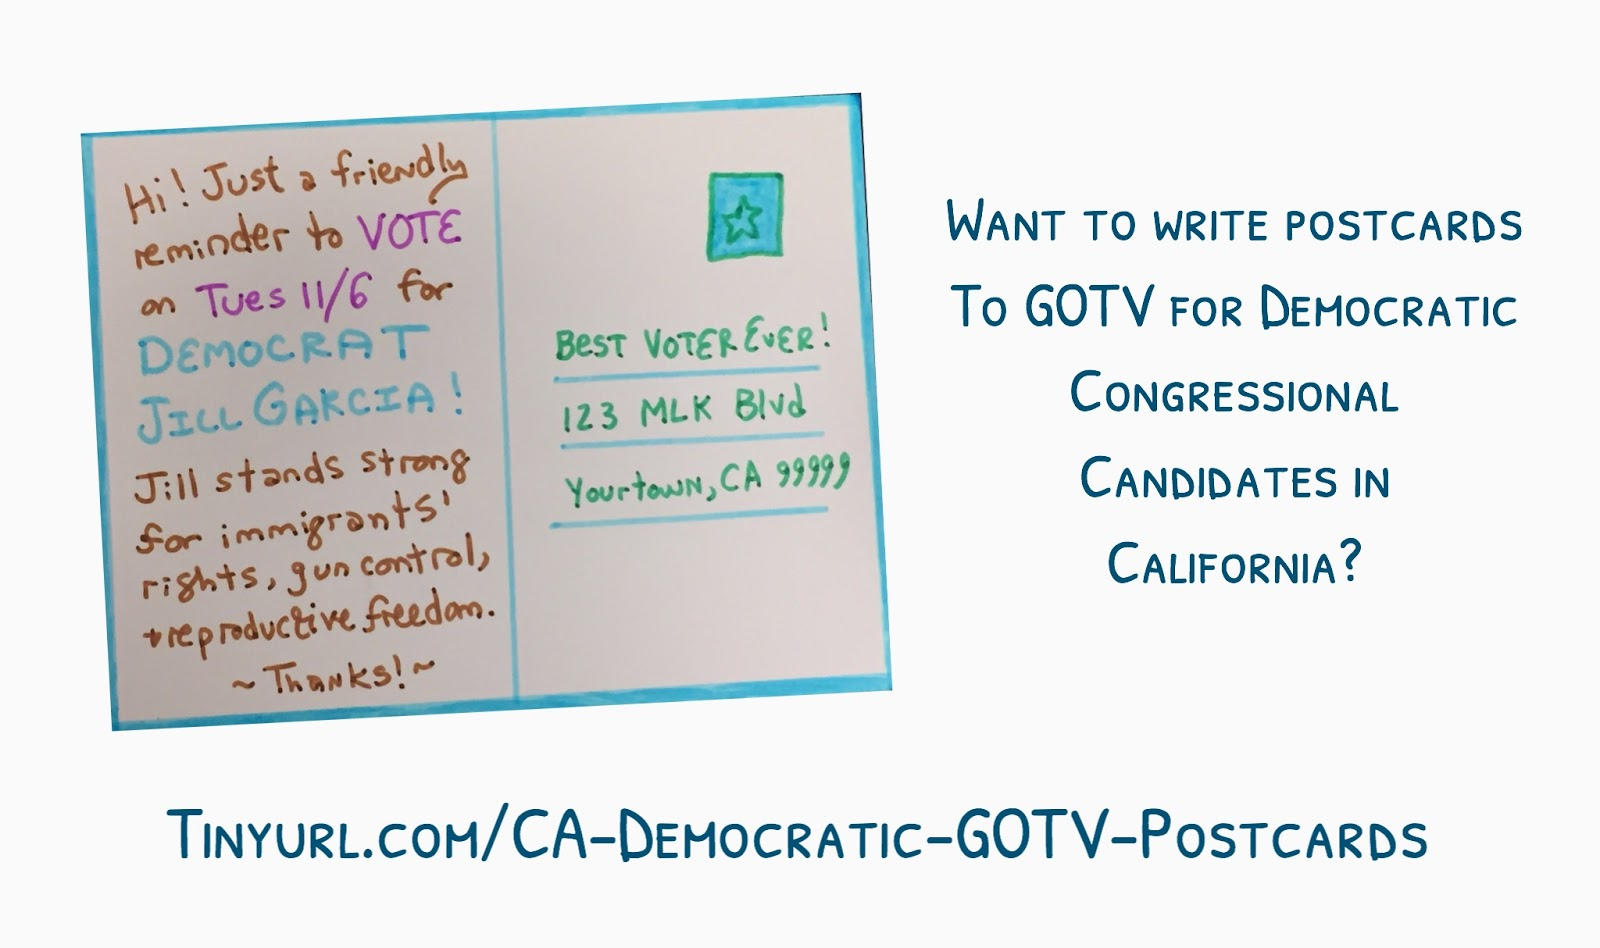 CA-Democratic-GOTV-Postcards.JPG